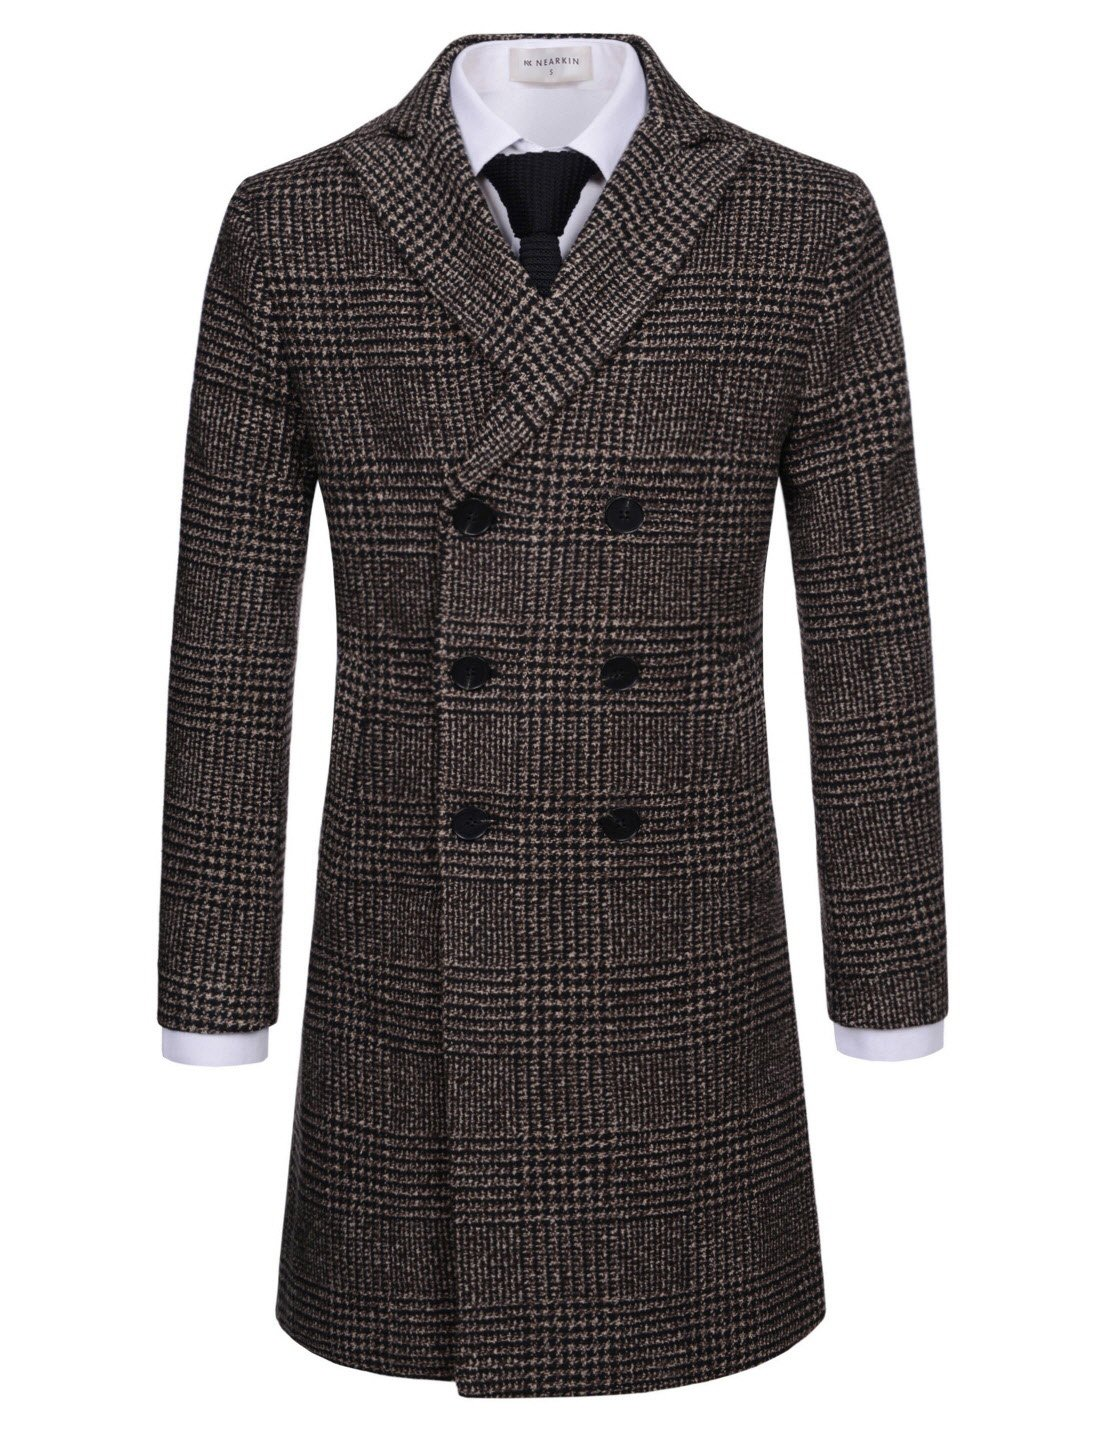 NEARKIN (NKNKDC7052) Mens Checker Double Breasted Peak Lapel Wool Blend Long Coat BROWNBLACK US L(Tag size L) by NEARKIN